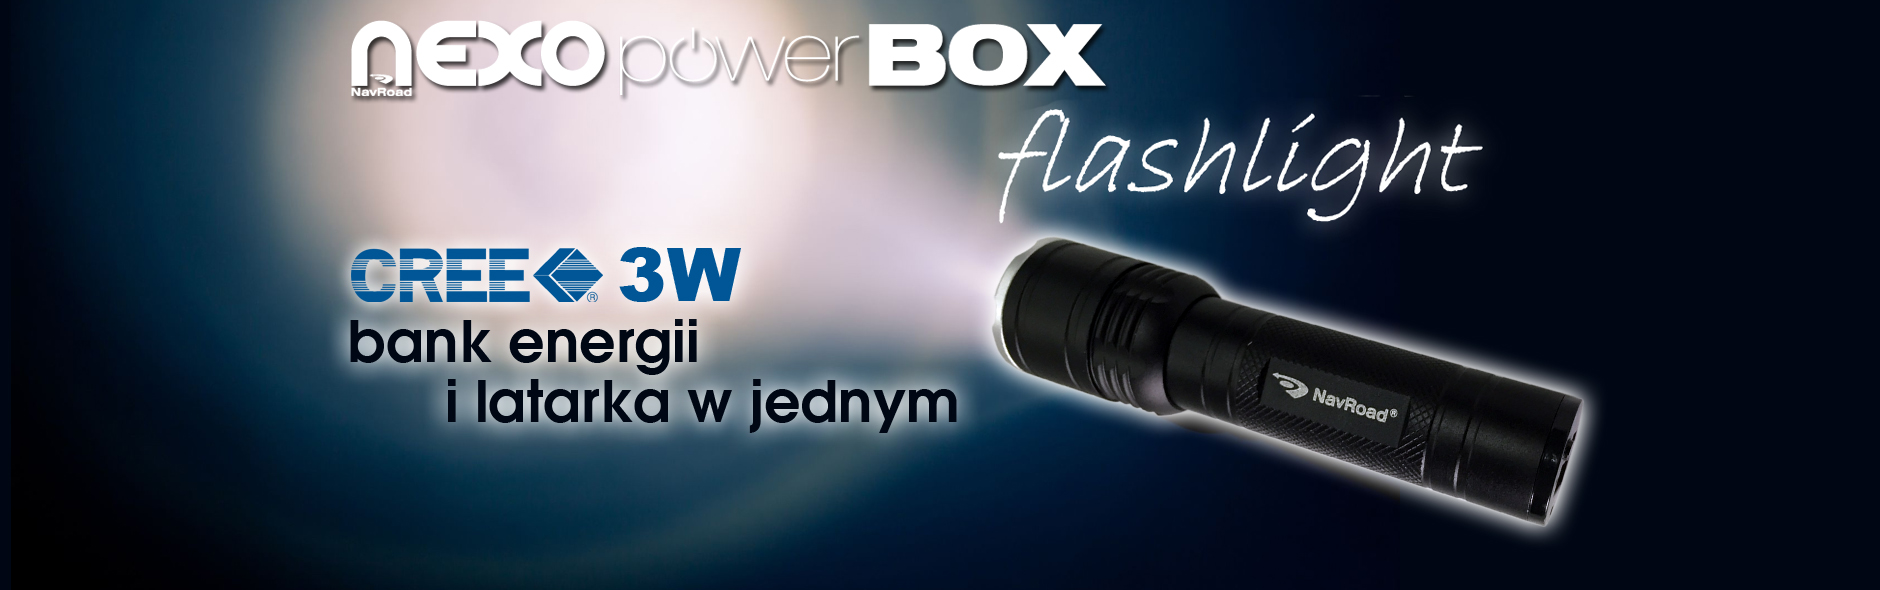 powerBOX flaslight_banner OK